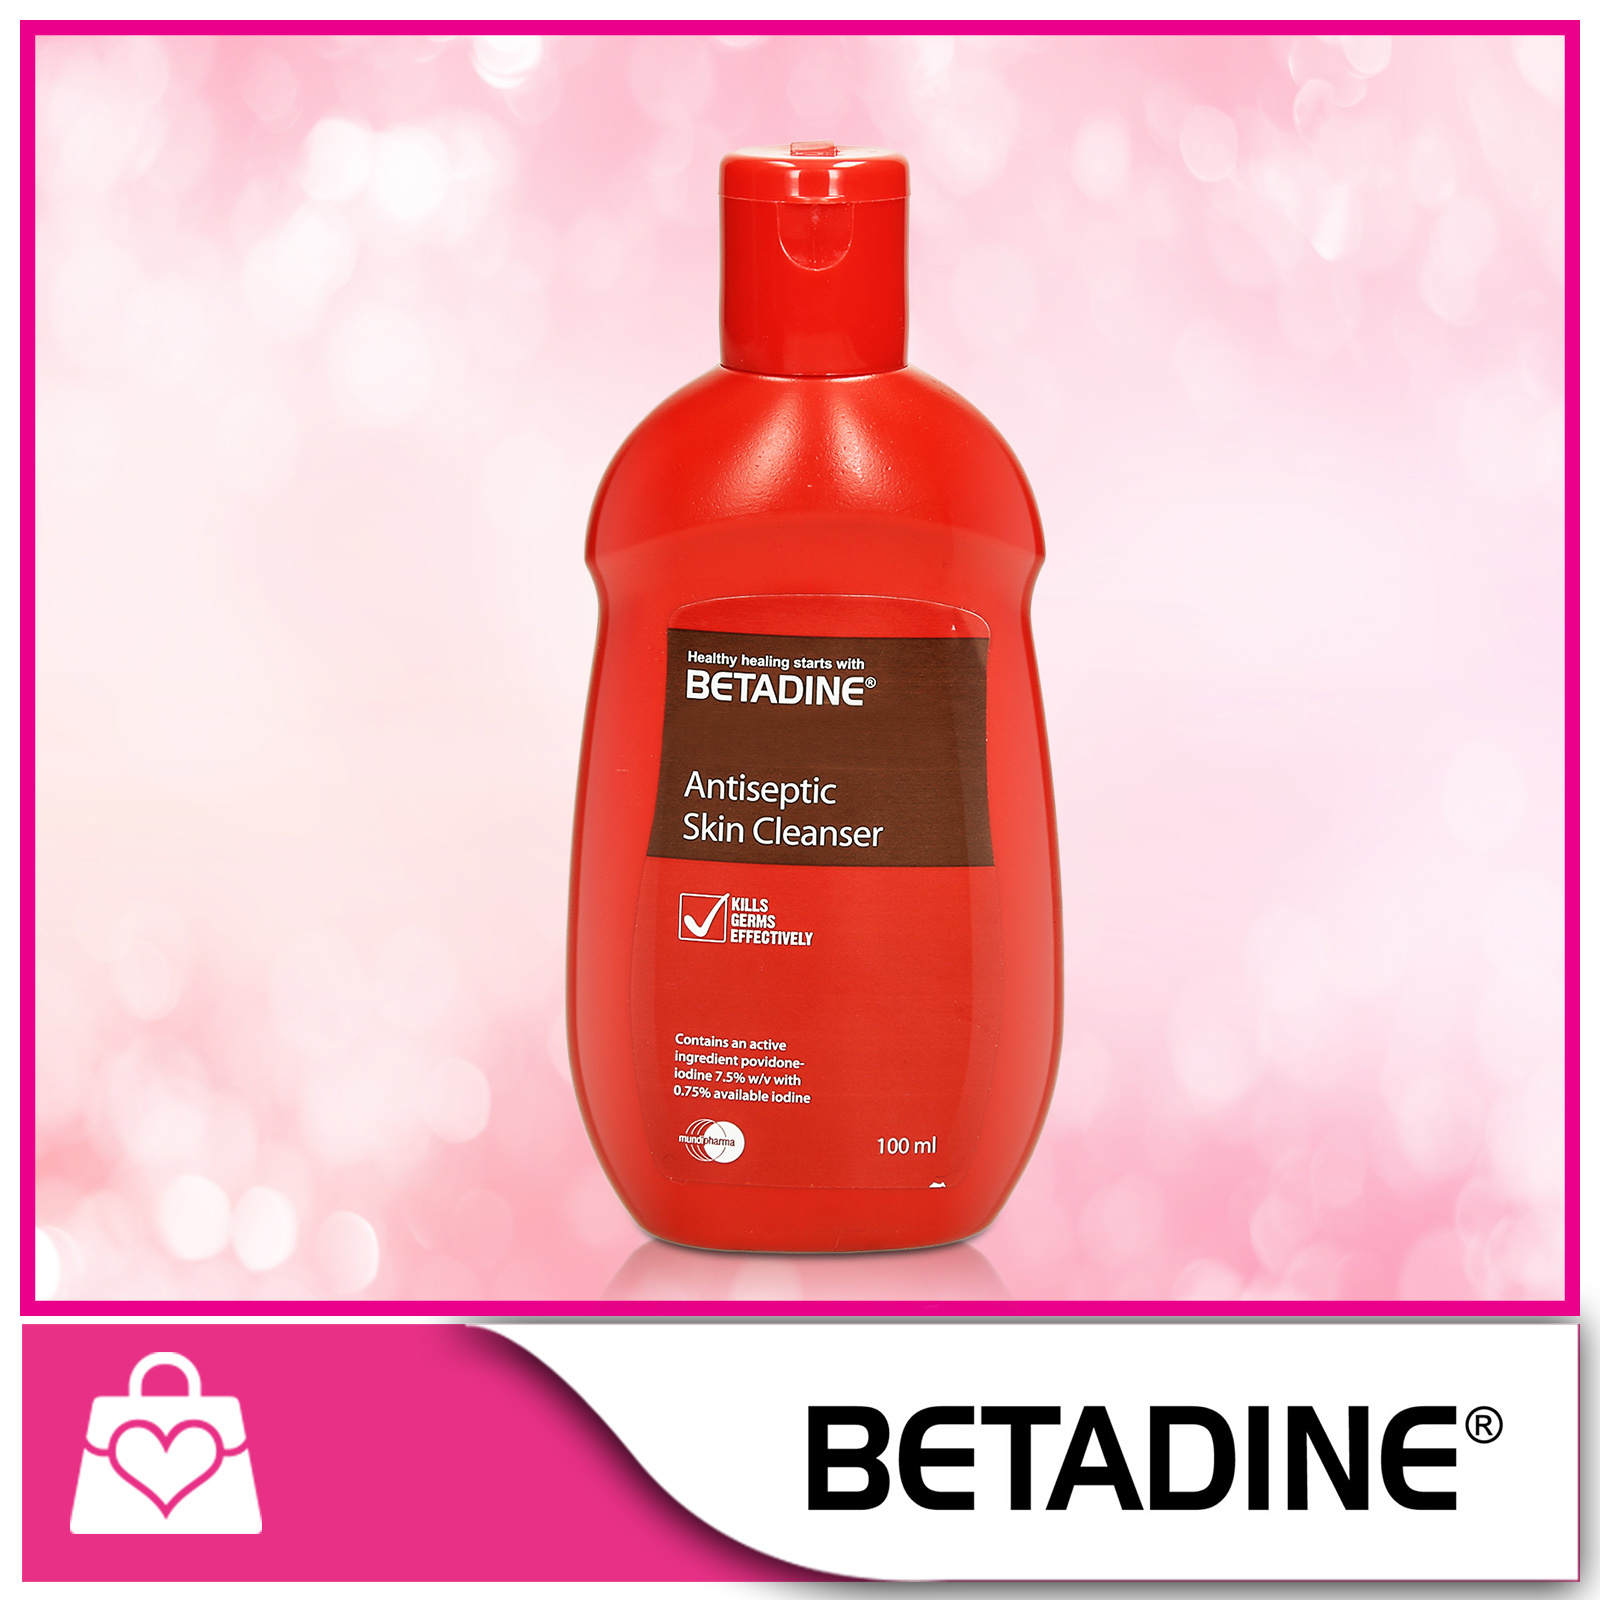 Qoo10 Betadine Antiseptic Skin Cleanser 100ml Household Bedding 5 Ml Fit To Viewer